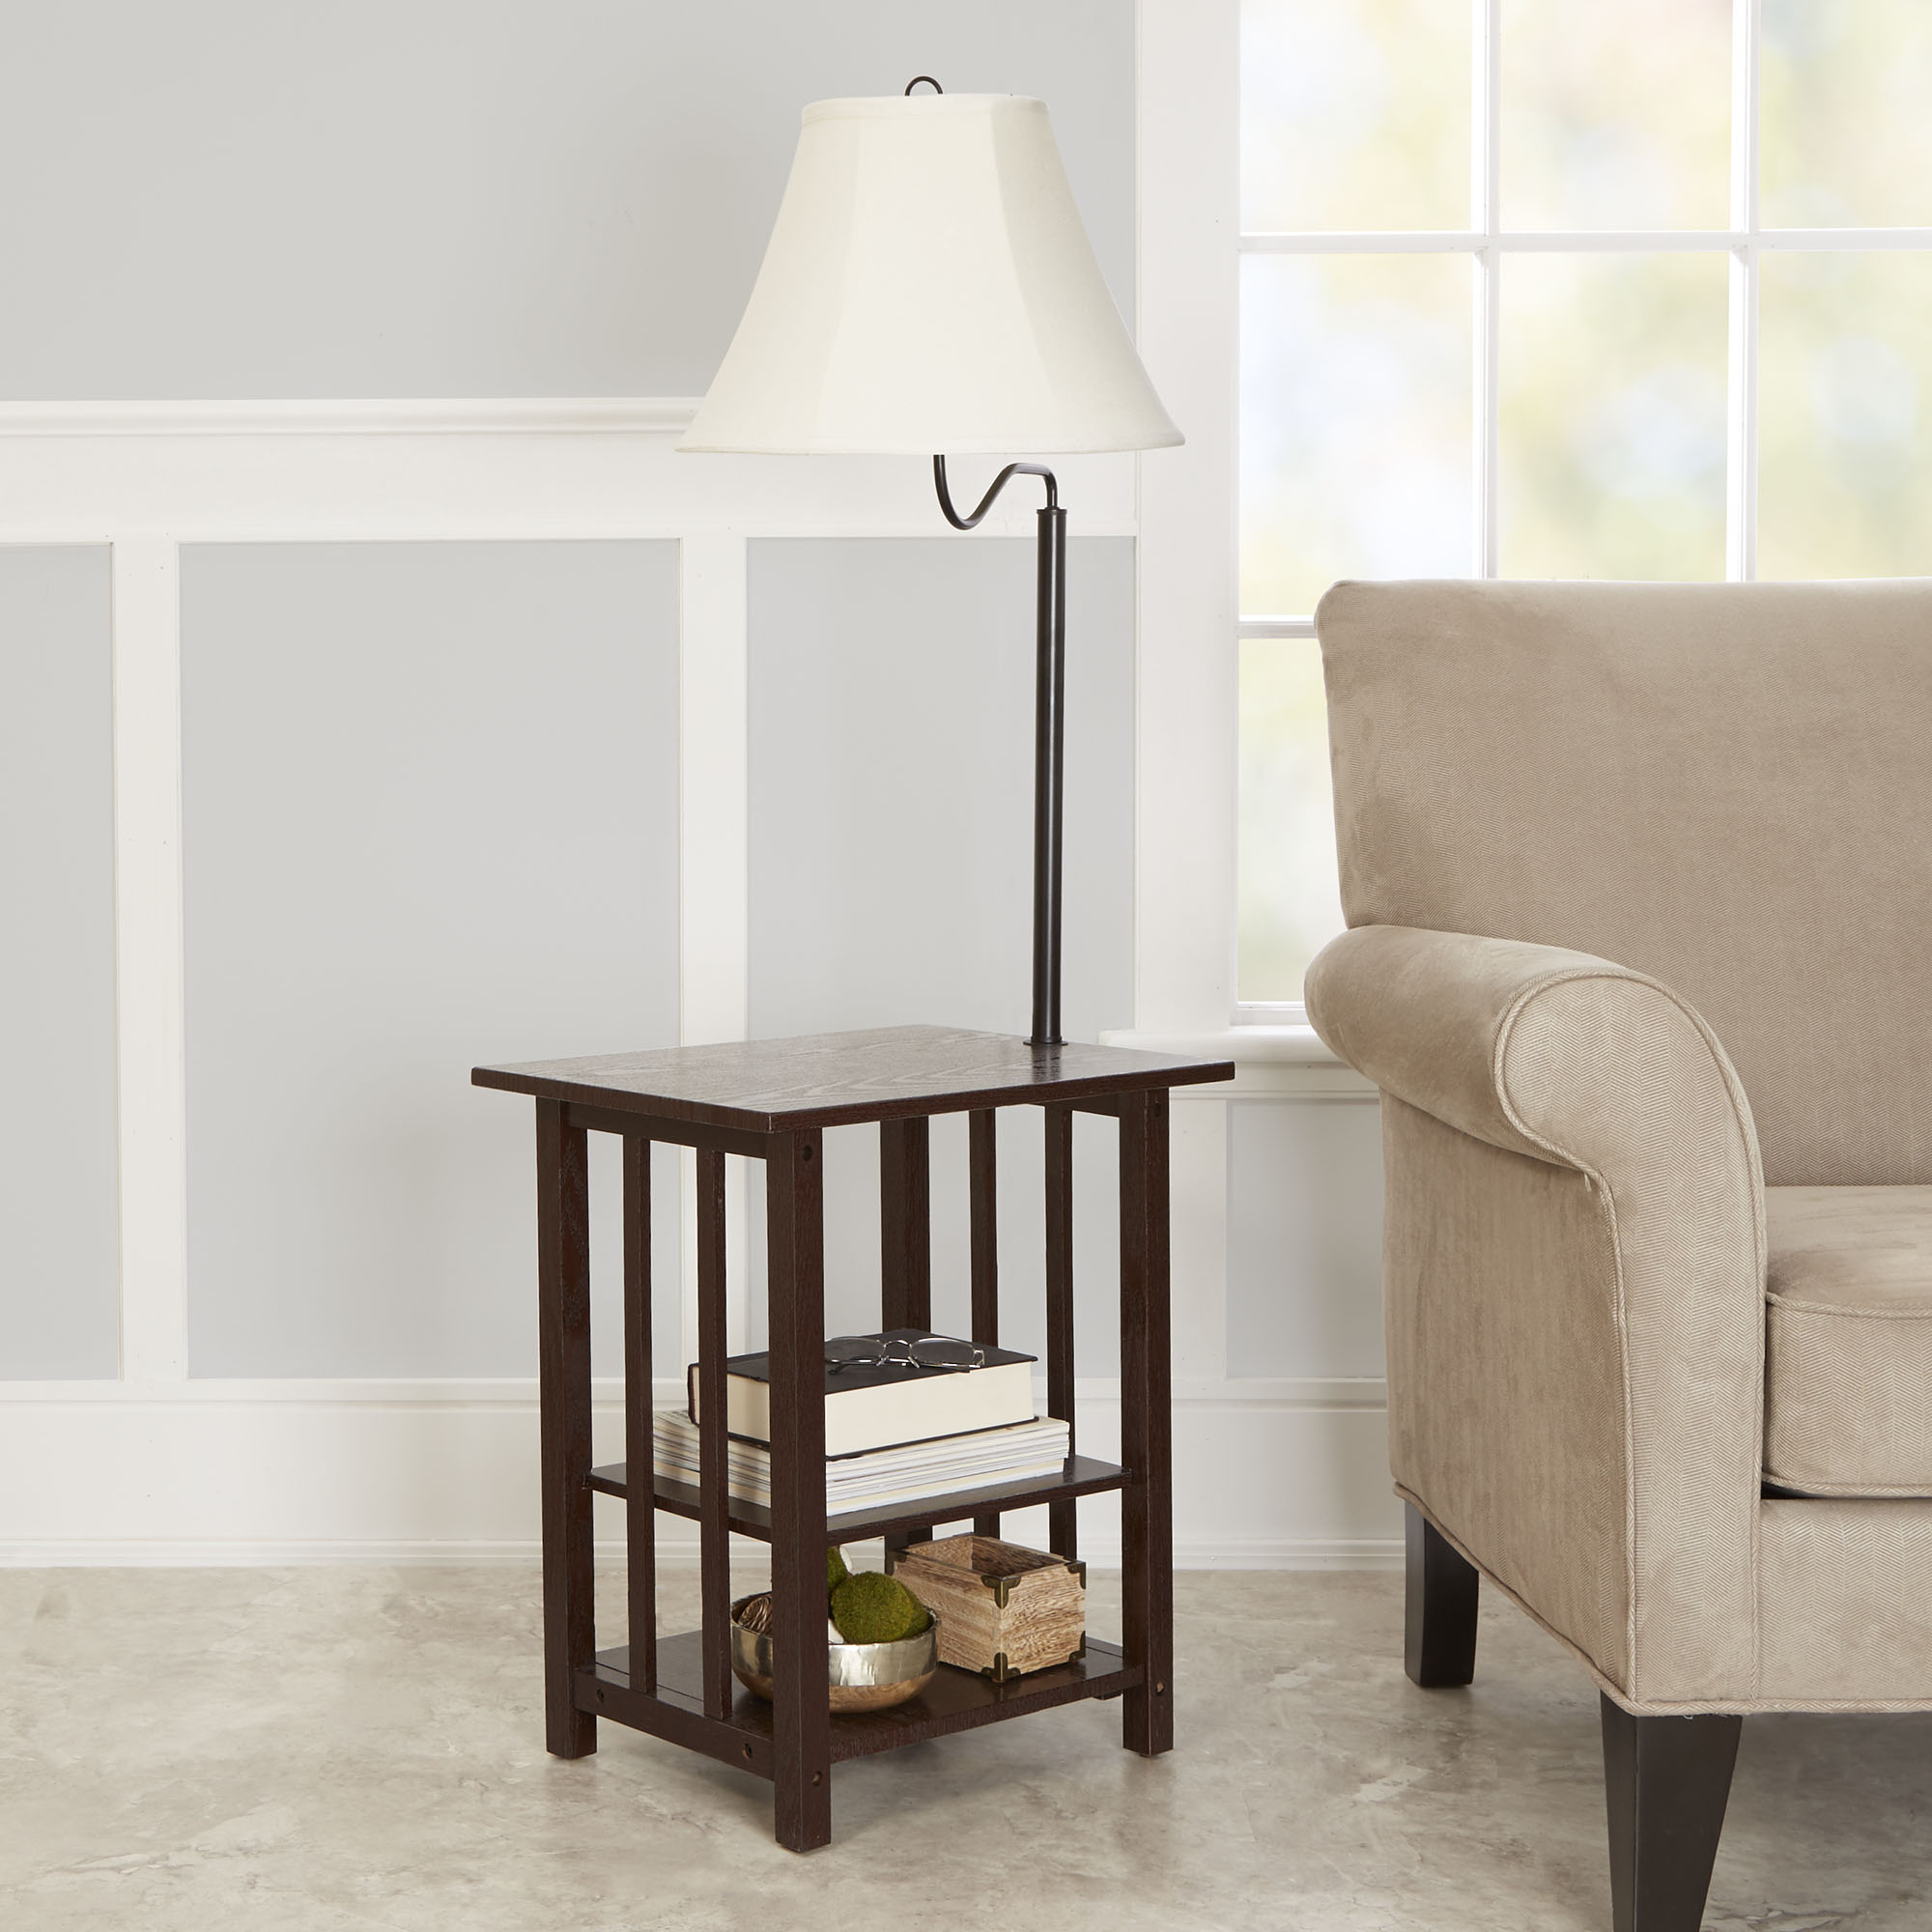 better homes gardens rack end table floor lamp espresso finish living room tables and lamps stanley furniture chairs average coffee measurements affordable rustic modern glass top